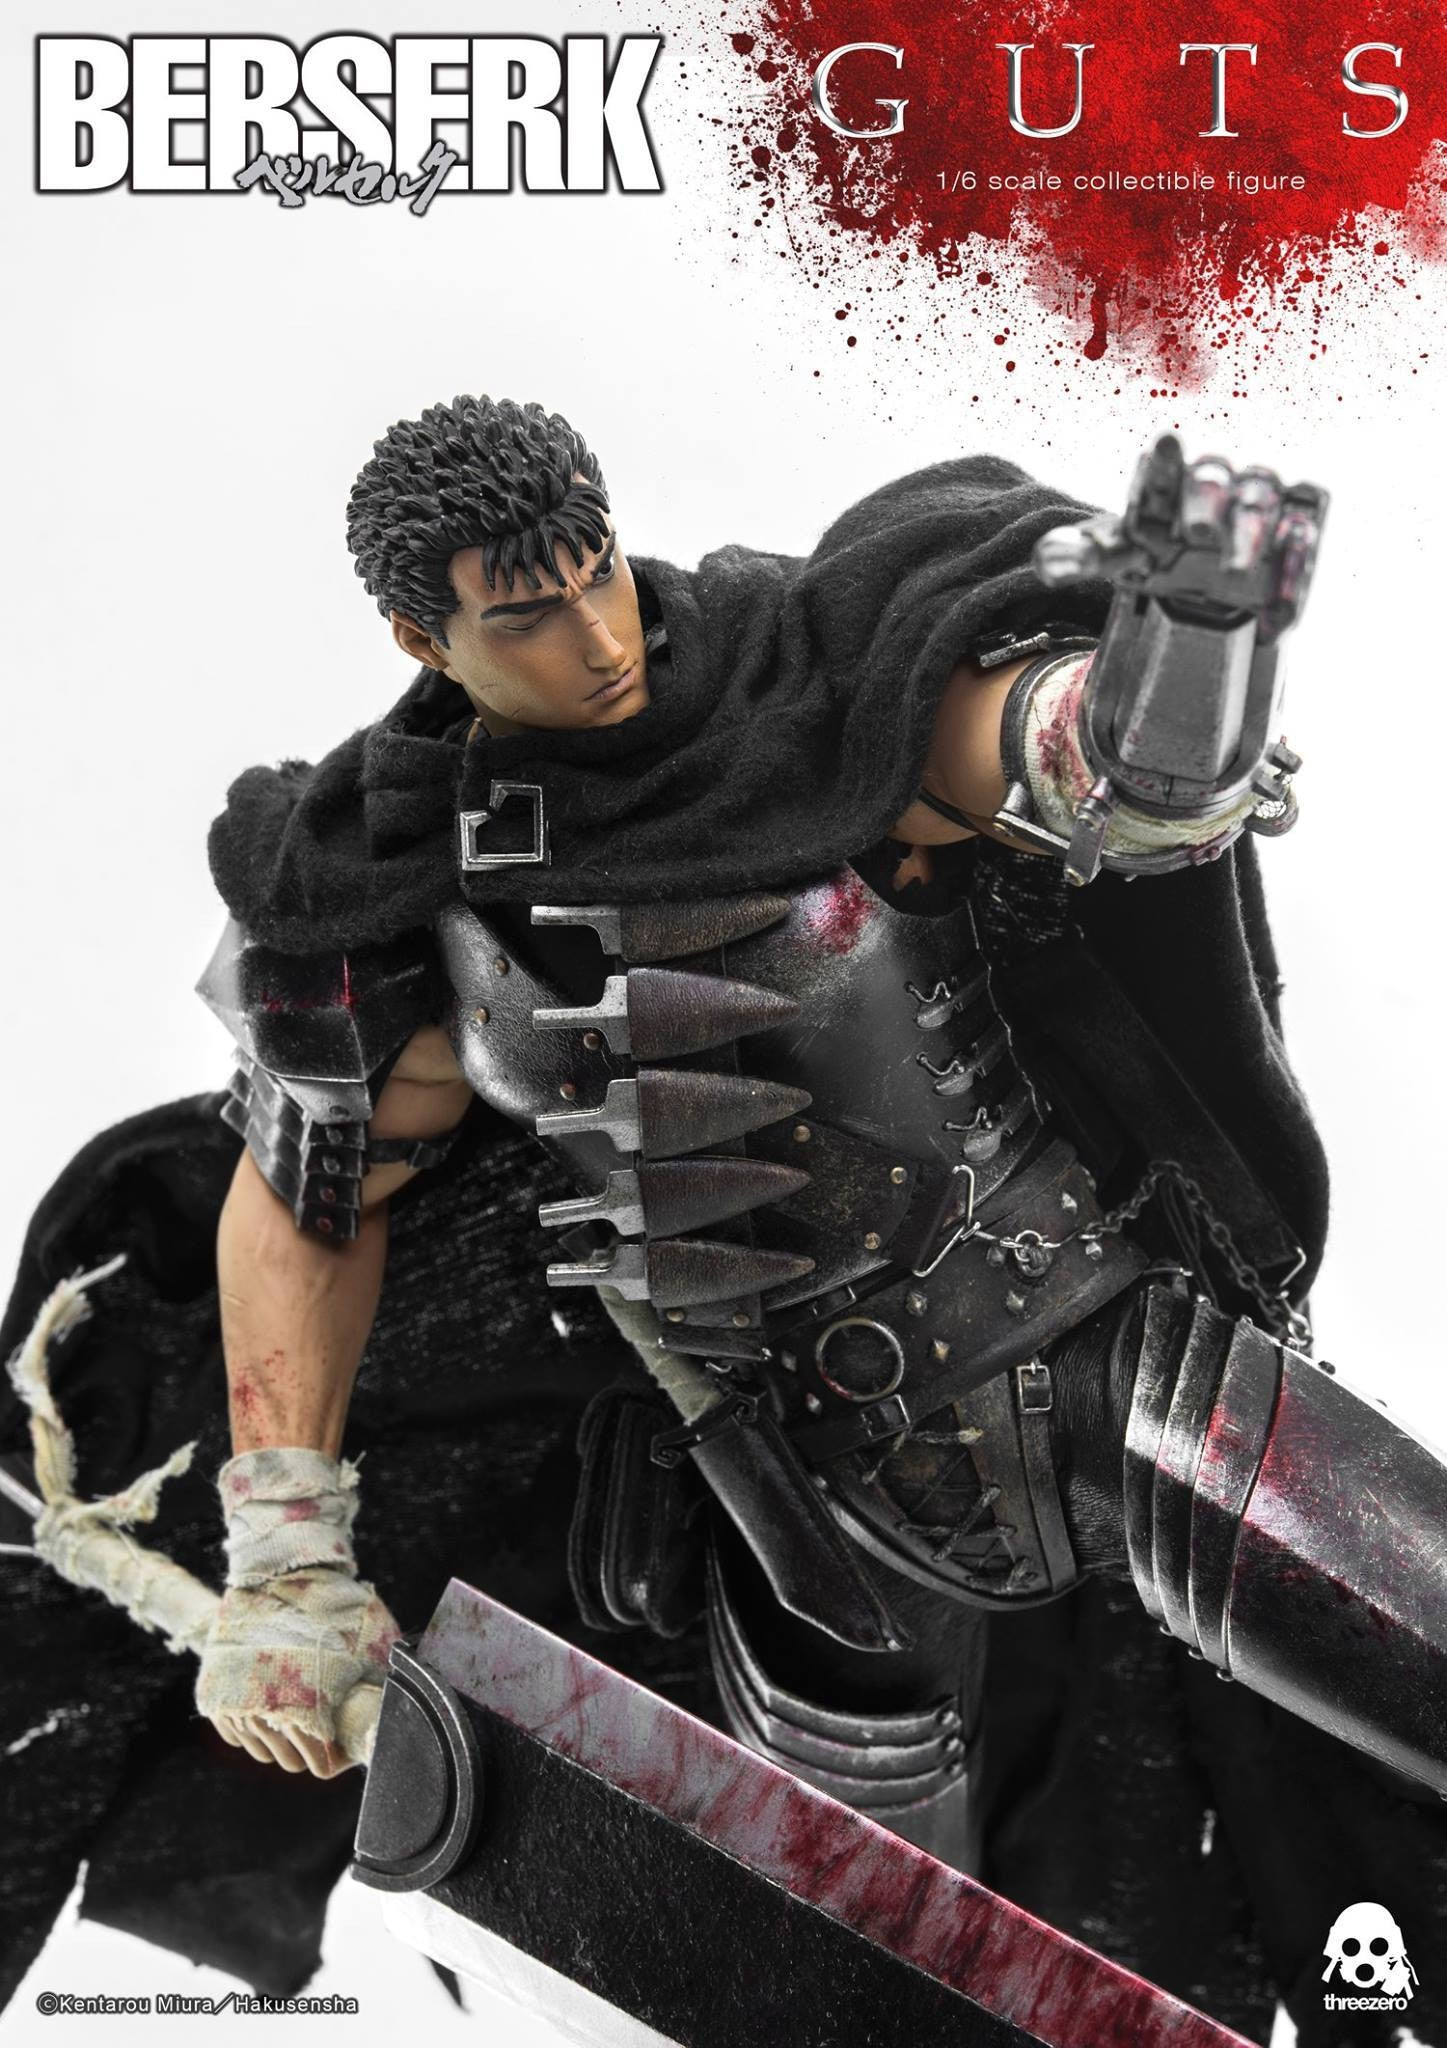 Threezero - Berserk - Guts (Reissue) - Marvelous Toys - 18